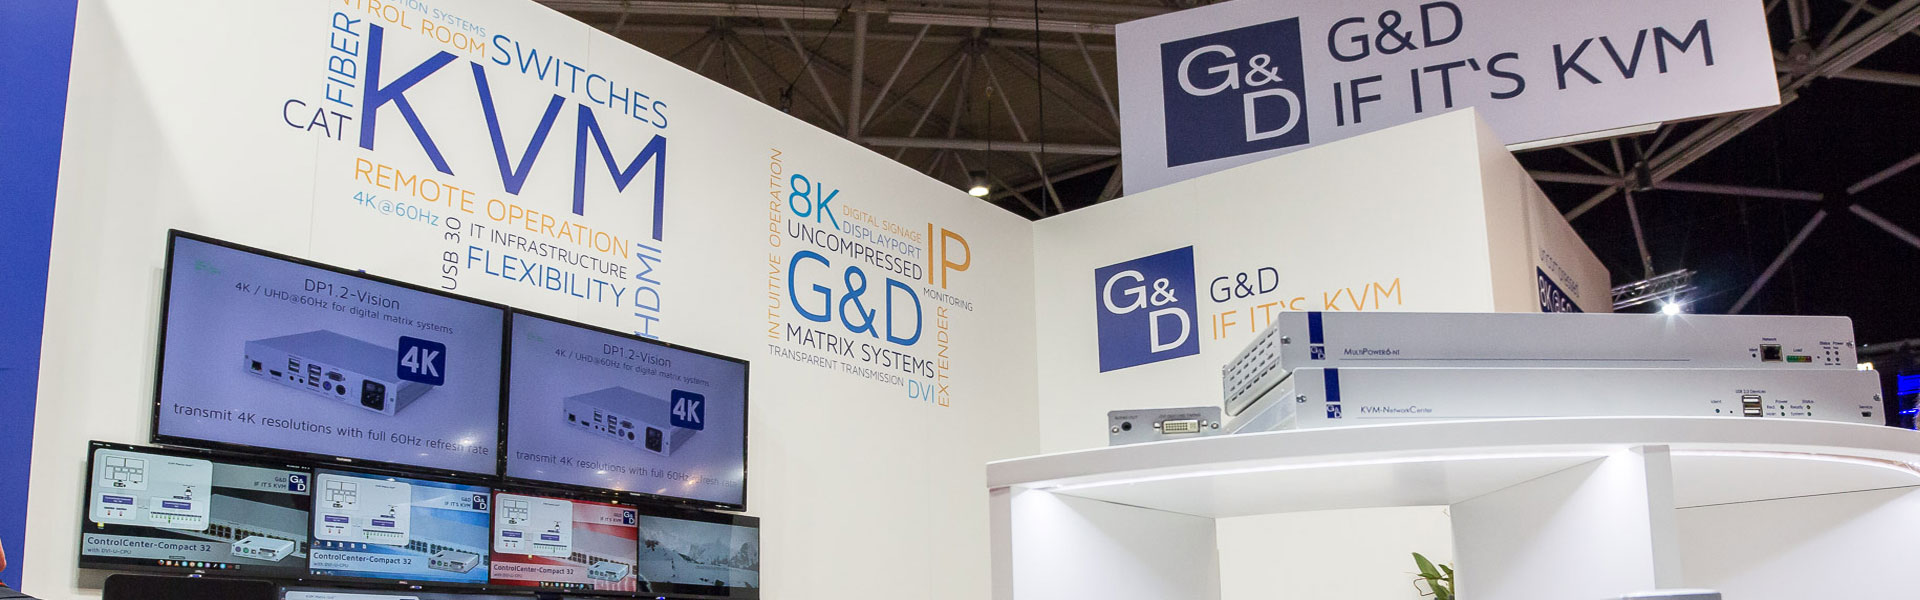 With KVM around the world – G&D's trade shows 2017